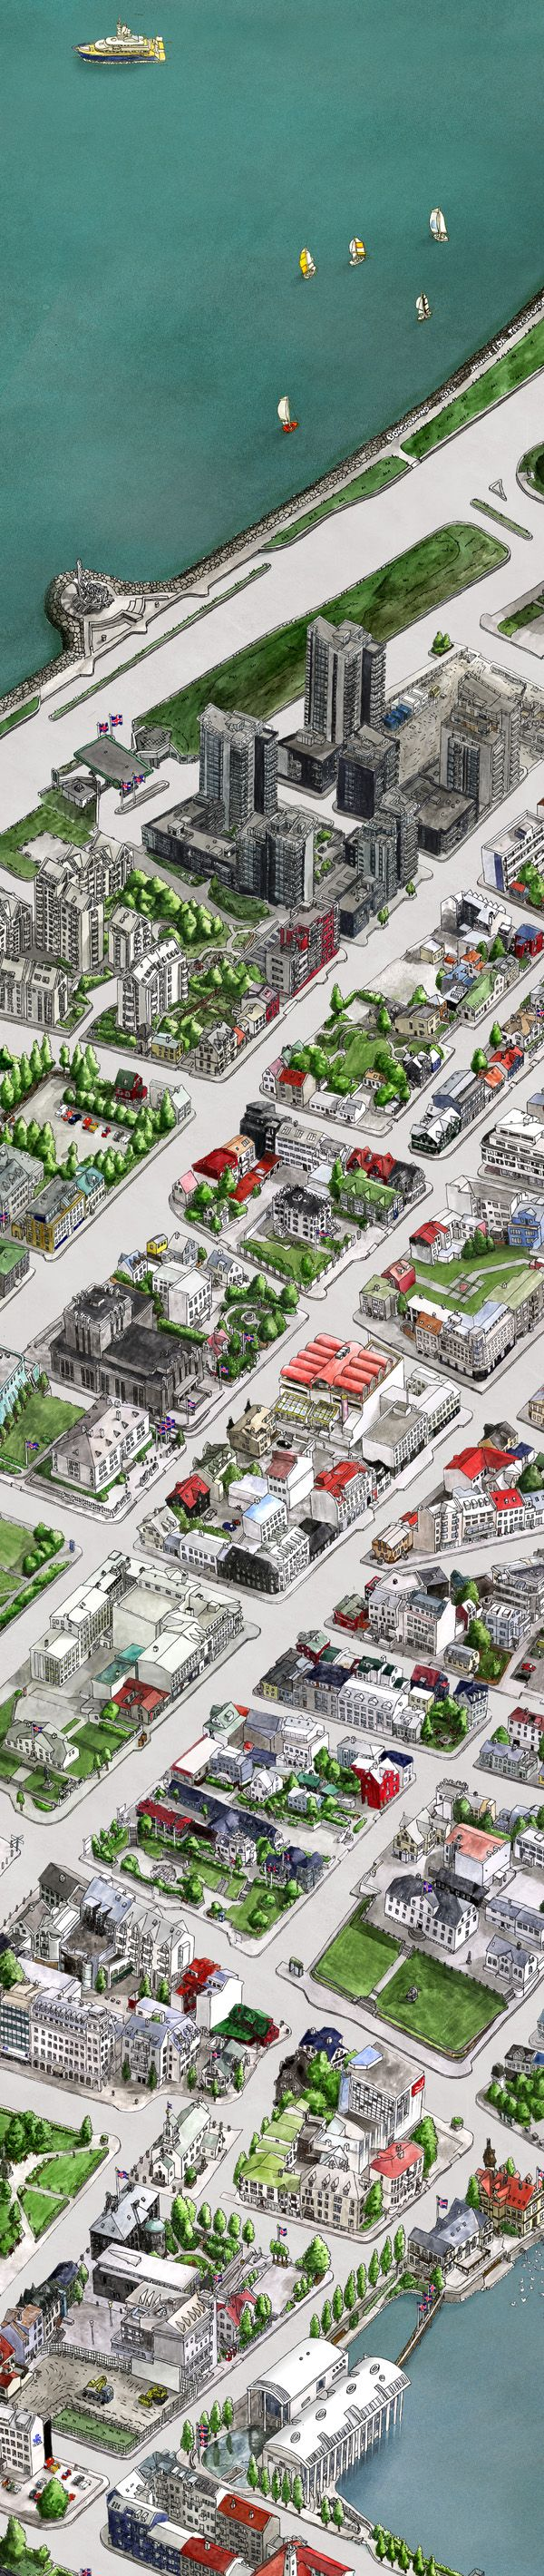 Interactive Hand-Drawn Map of Central Reykjavík